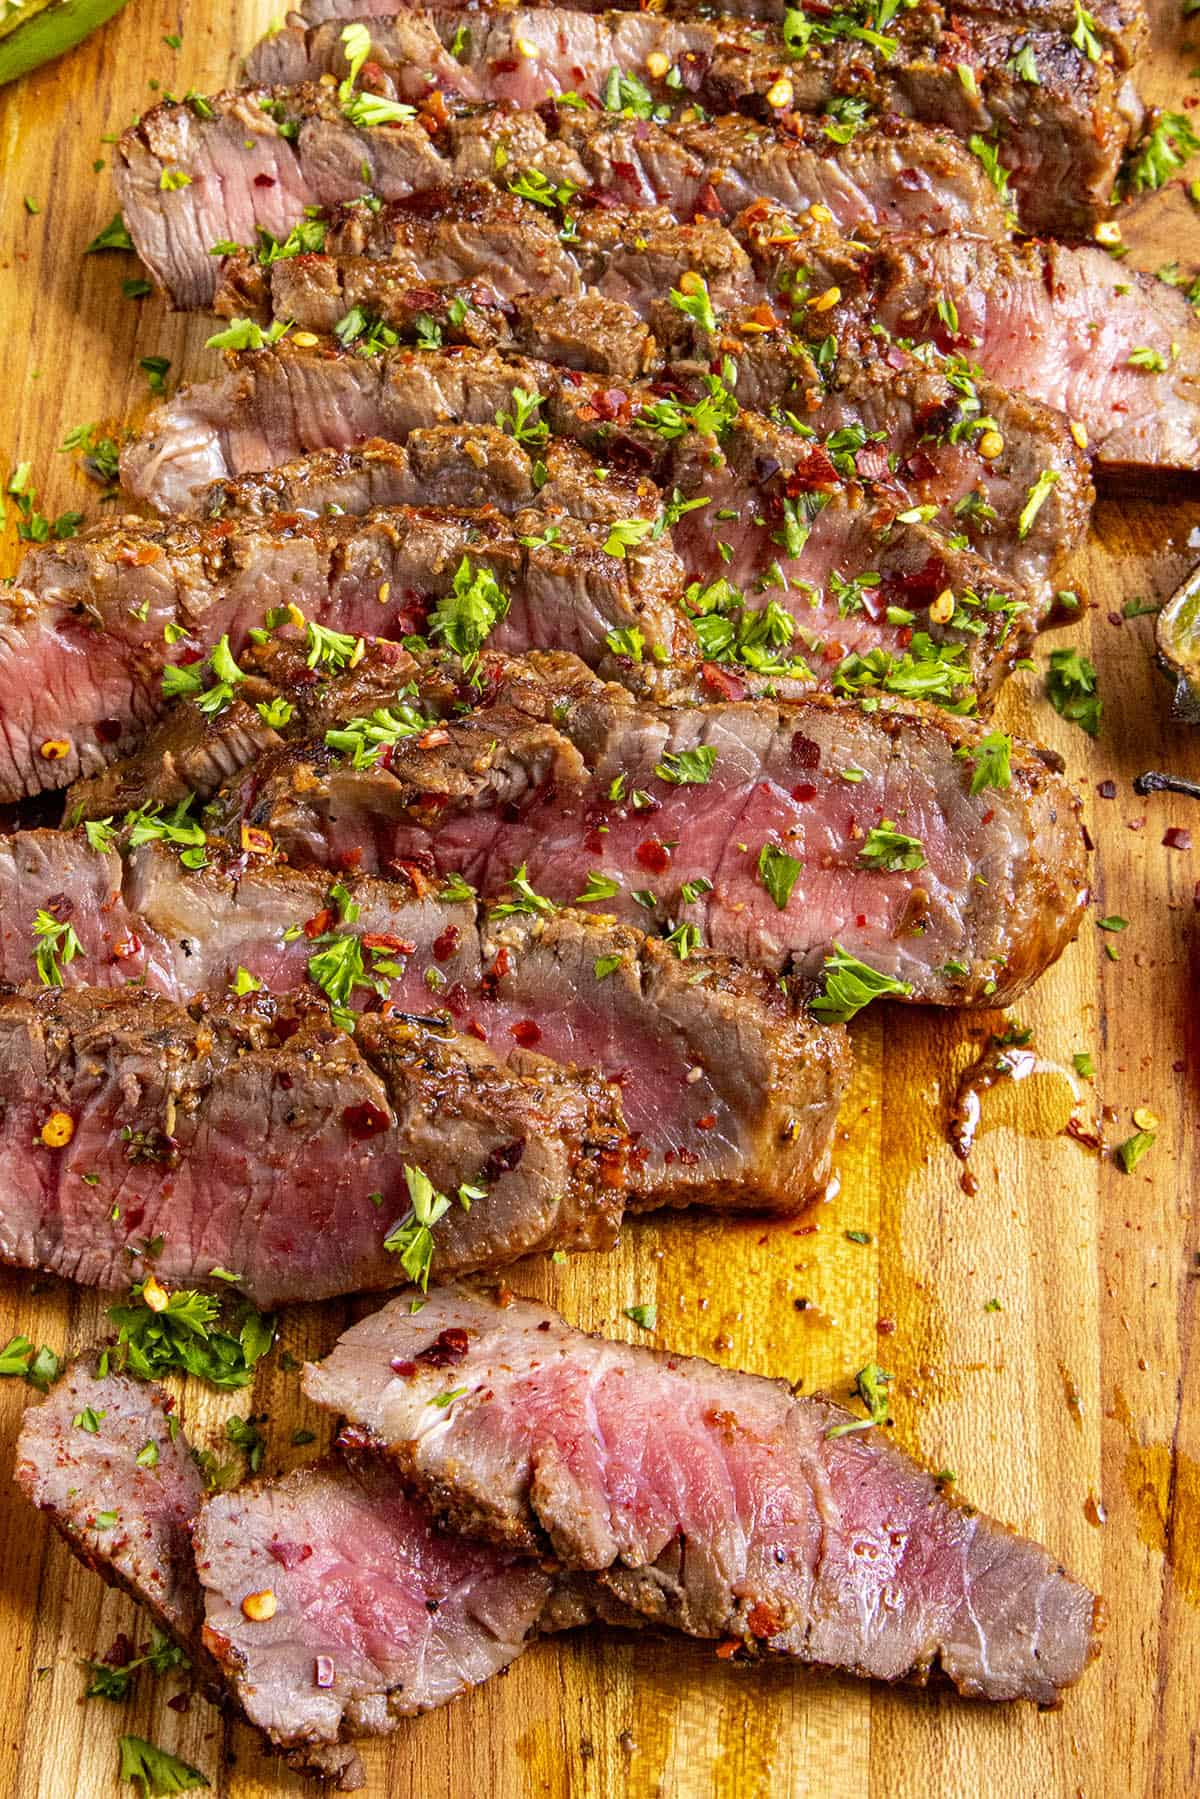 Sliced London broil on a cutting board